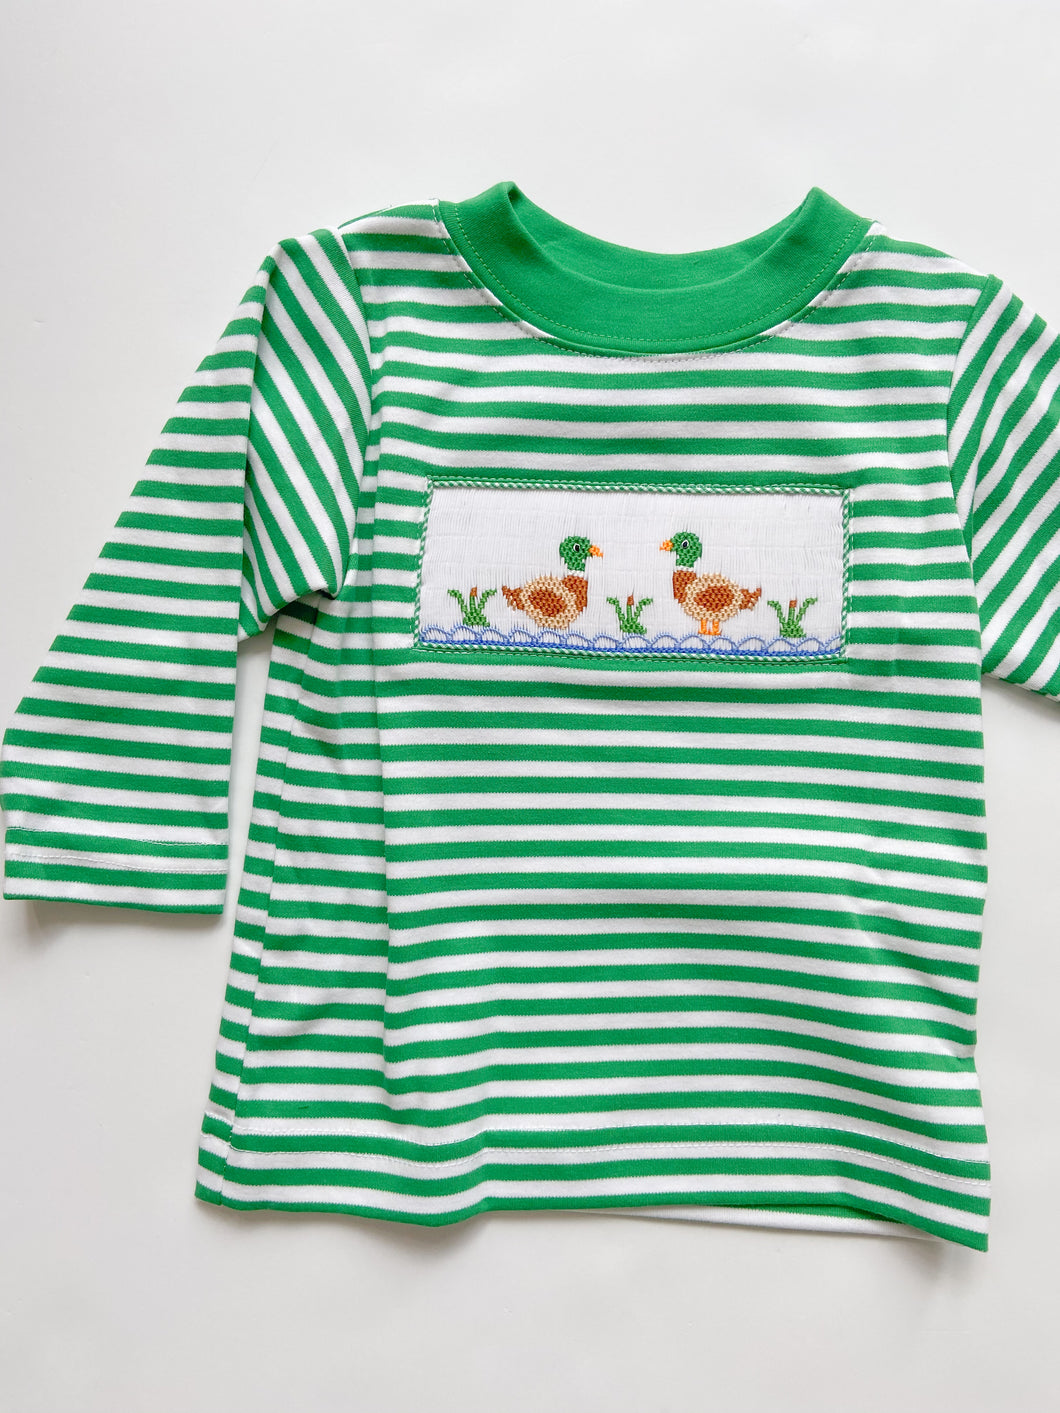 Mallard Duck Smocked T-Shirt 320P -4-6 Boys